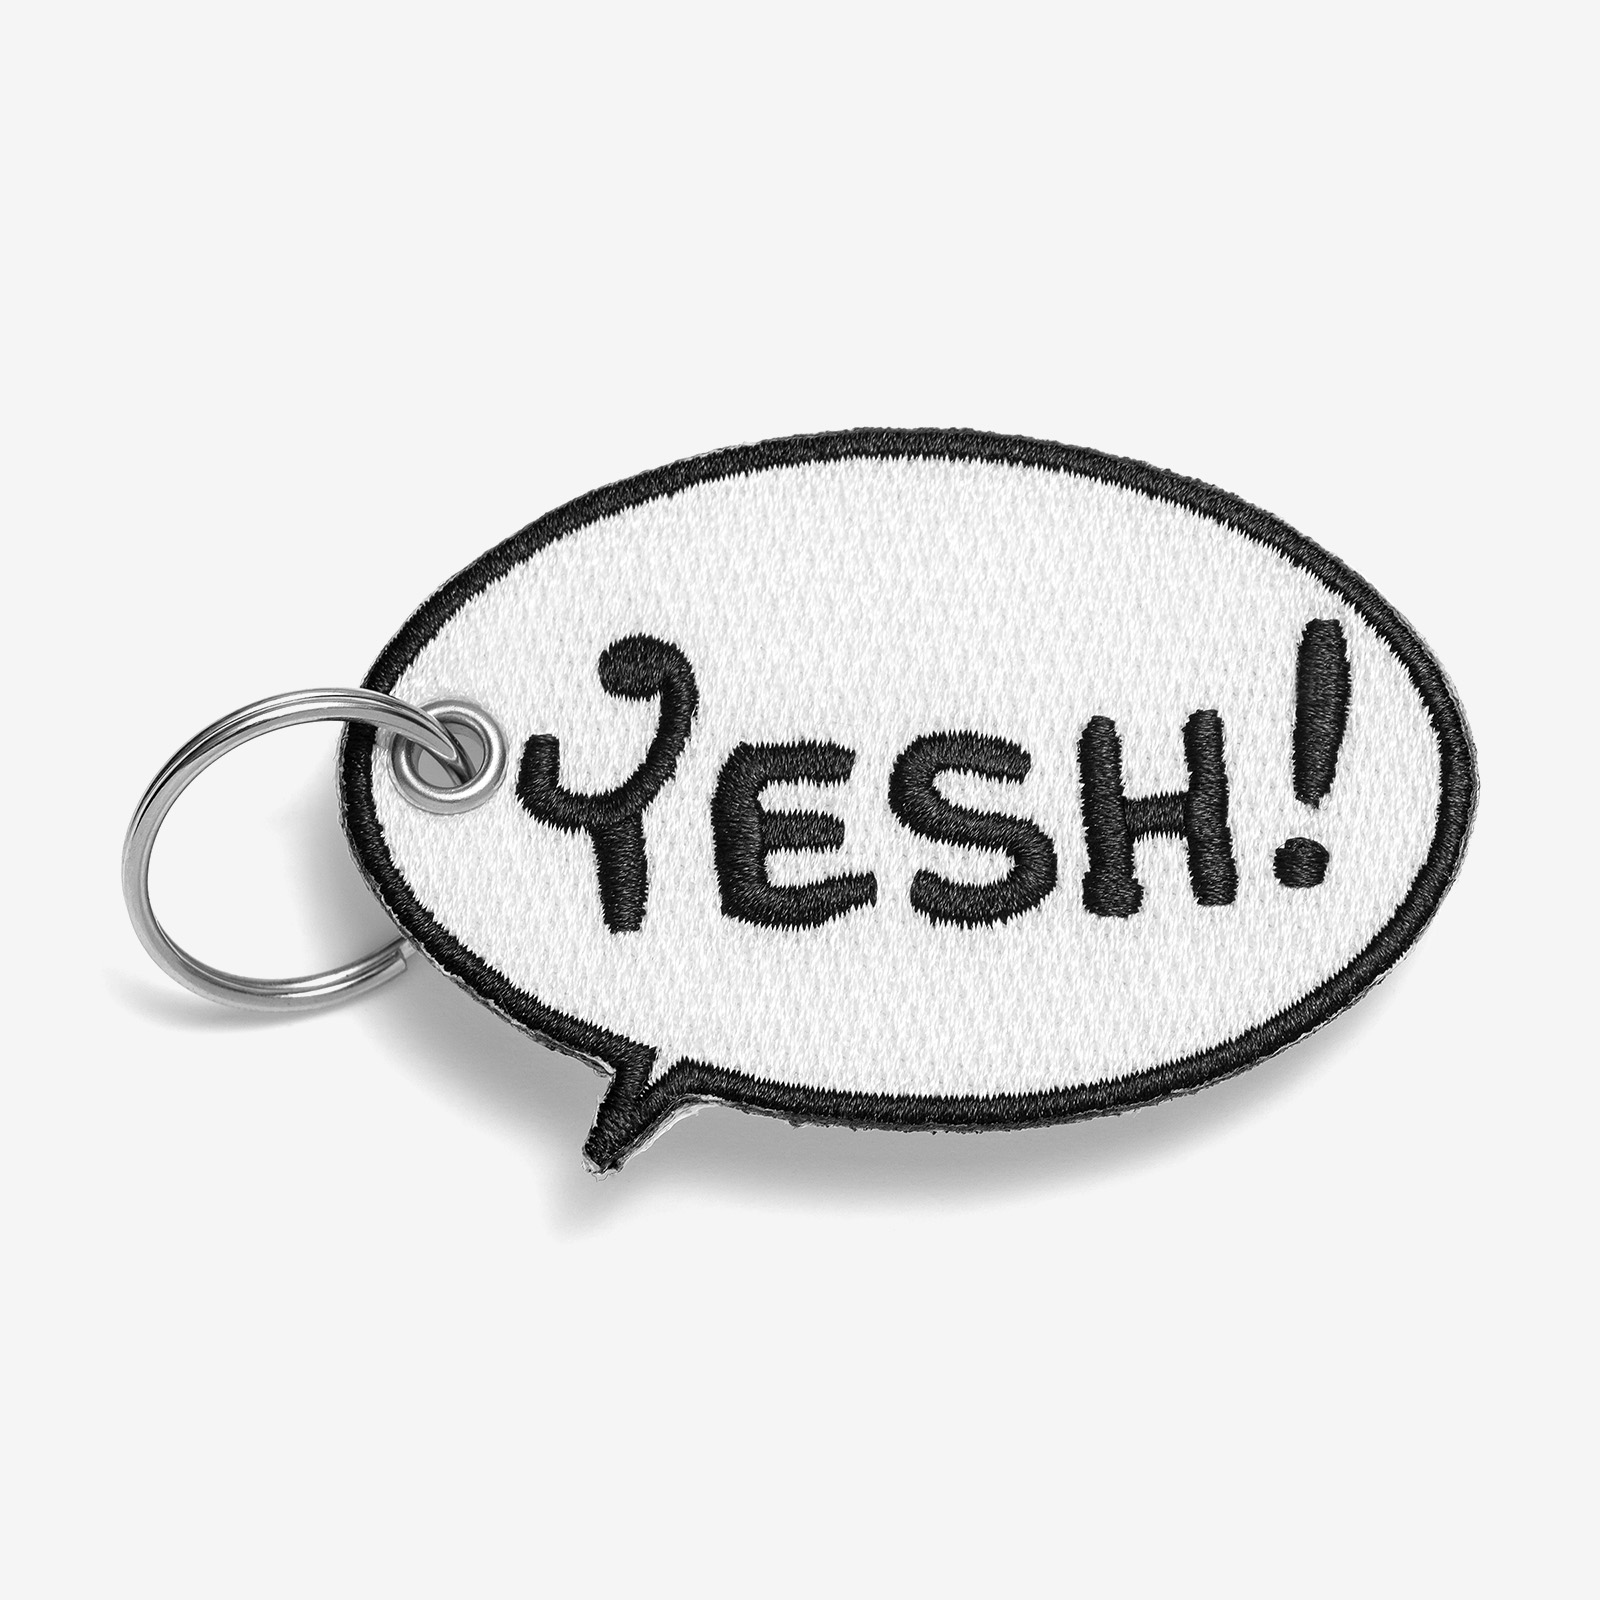 Keychain product picture